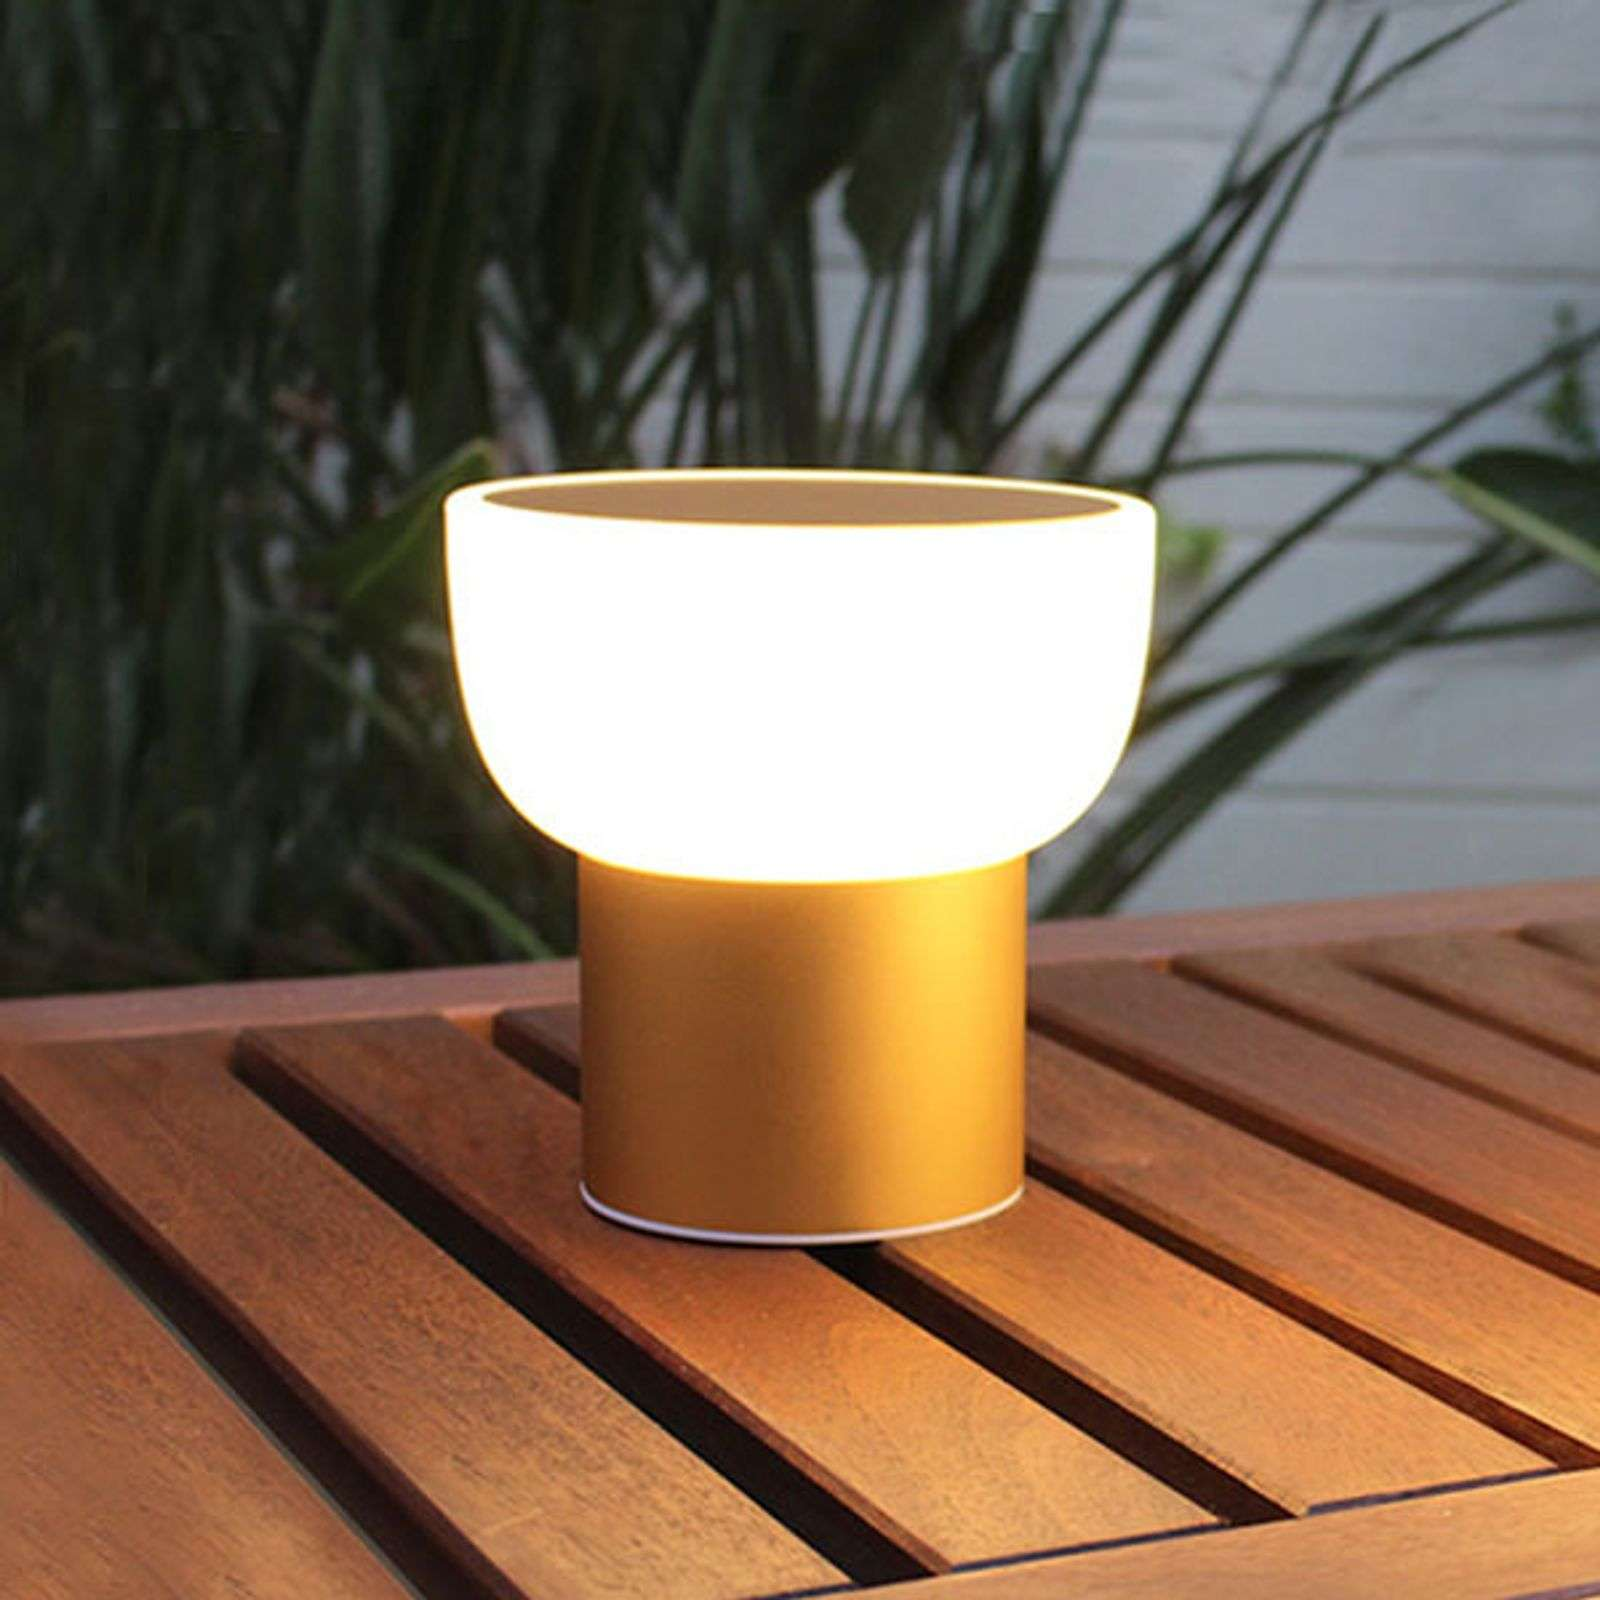 Luz decorativa LED Patio, dorado 16 cm 1 USB